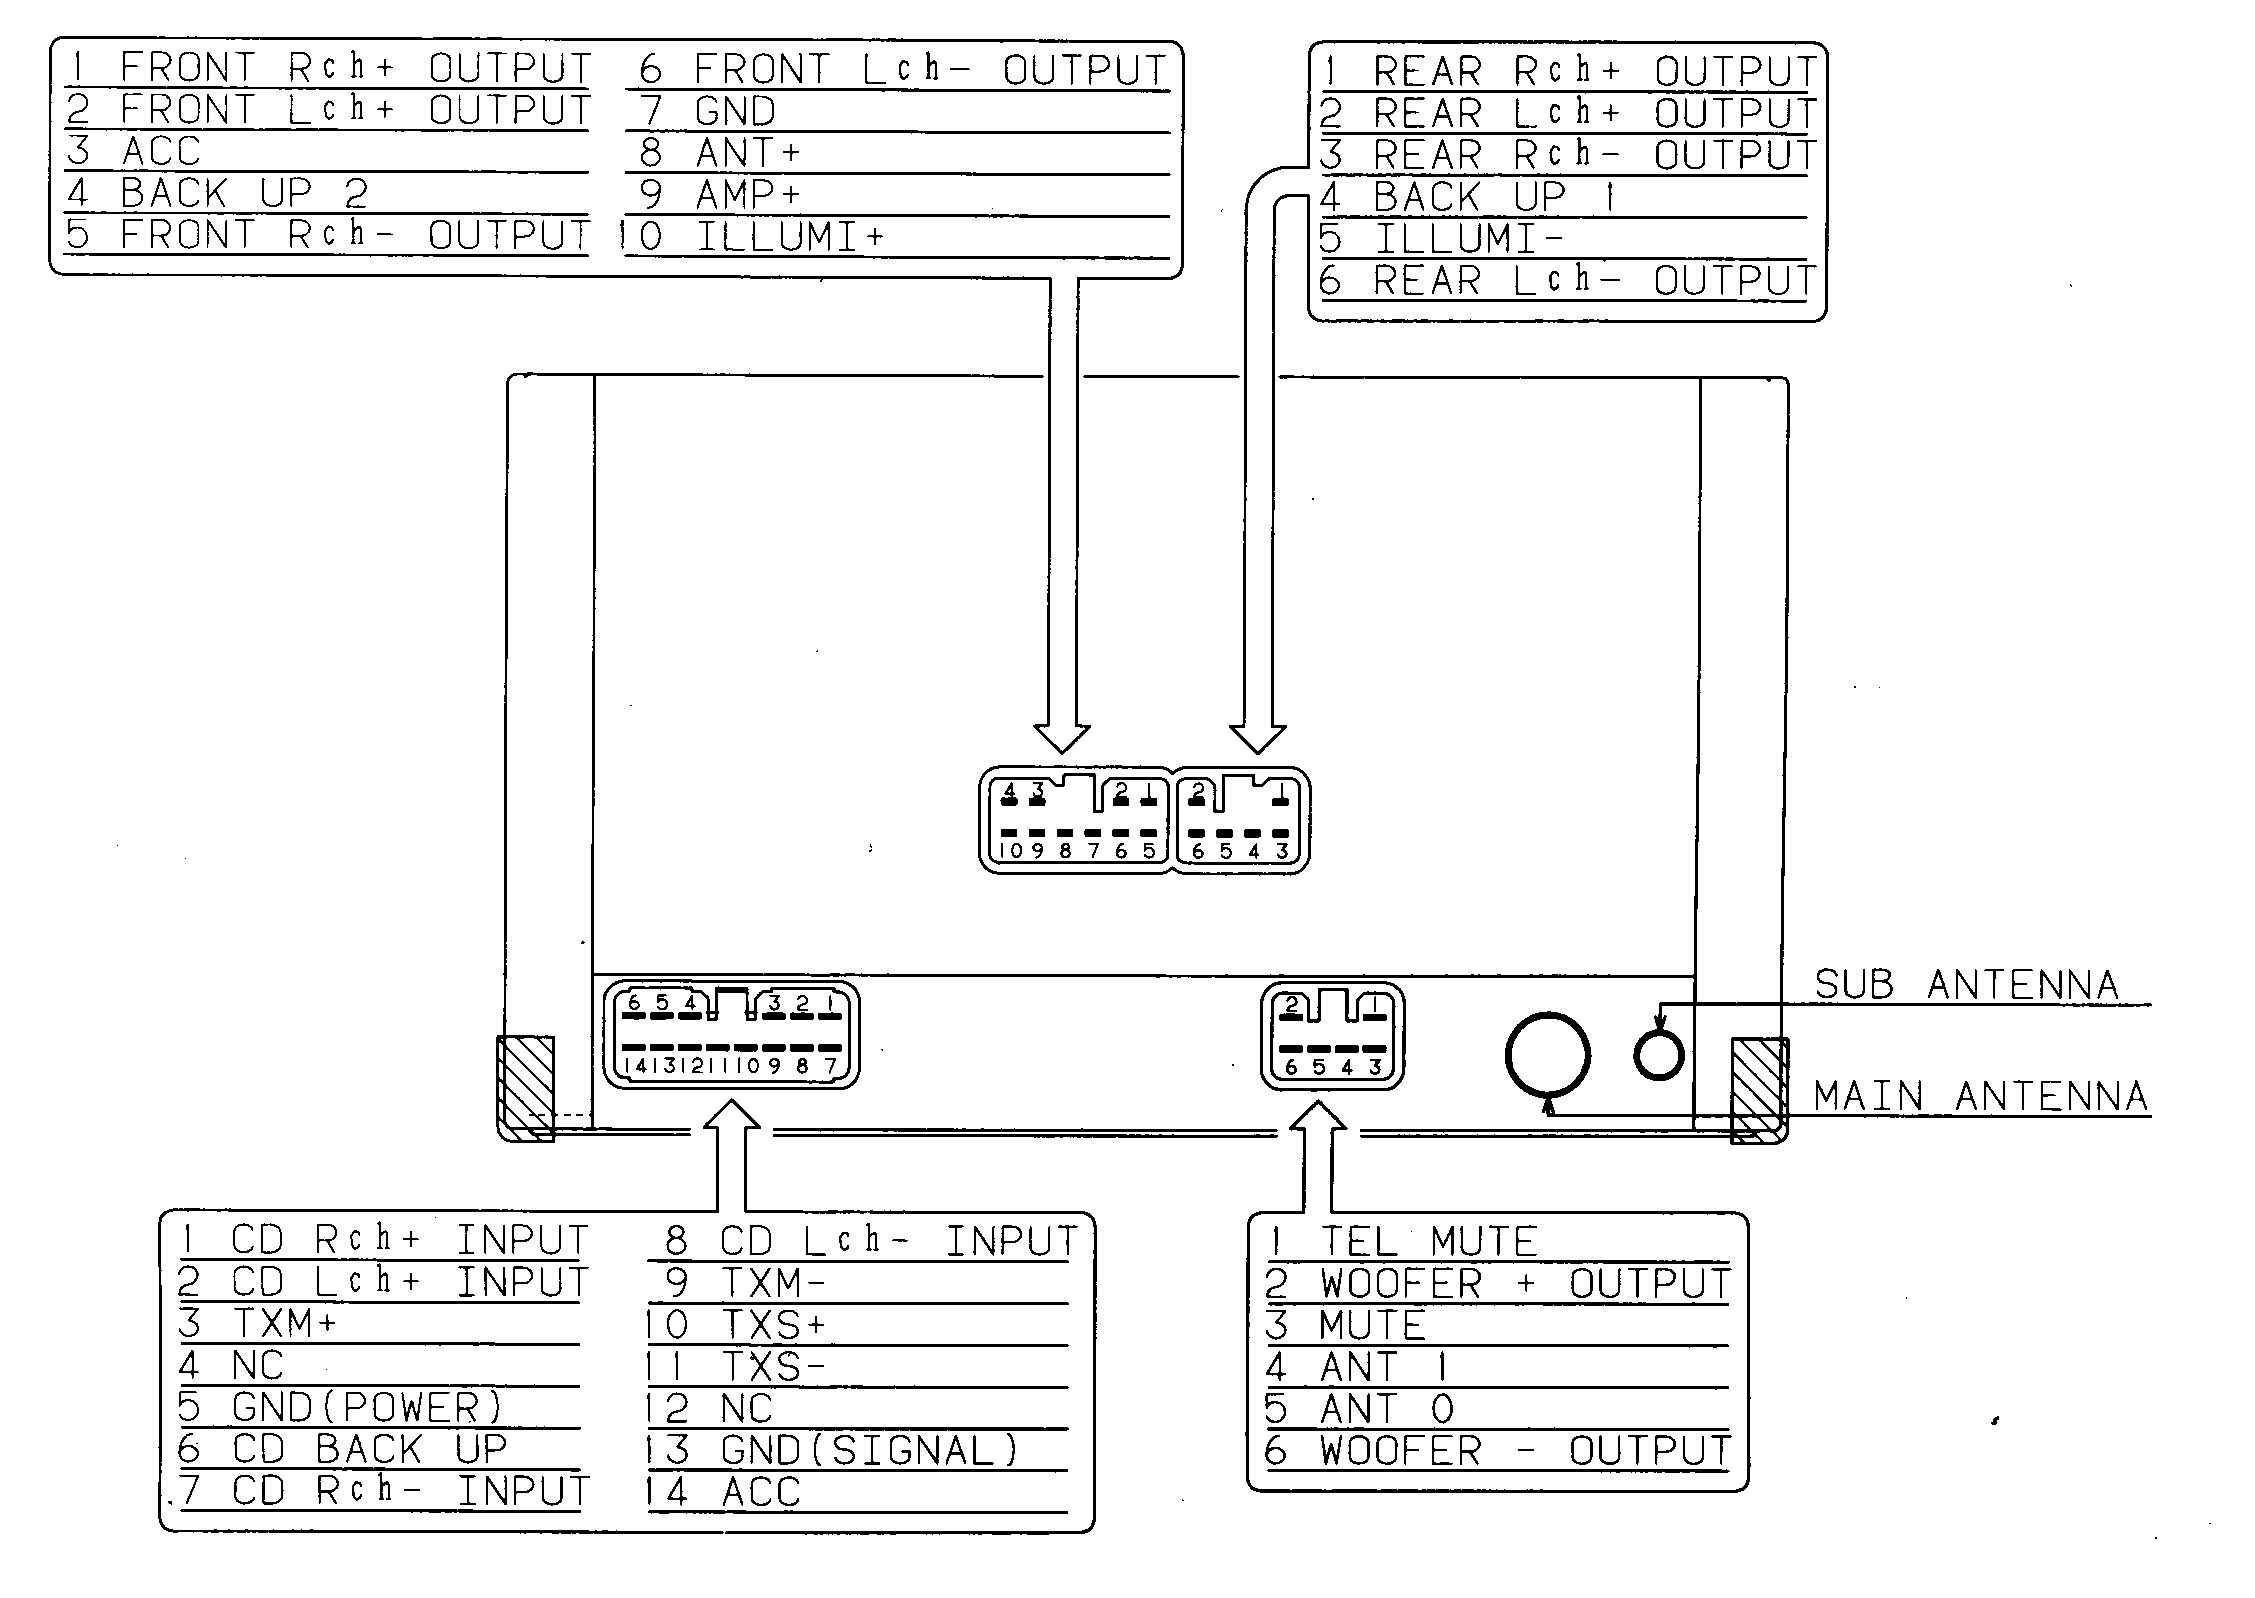 Car Stereo Wiring Harness Diagram Wiring Harness Diagram for A sony Xplod Radio Wiring Diagram for Of Car Stereo Wiring Harness Diagram